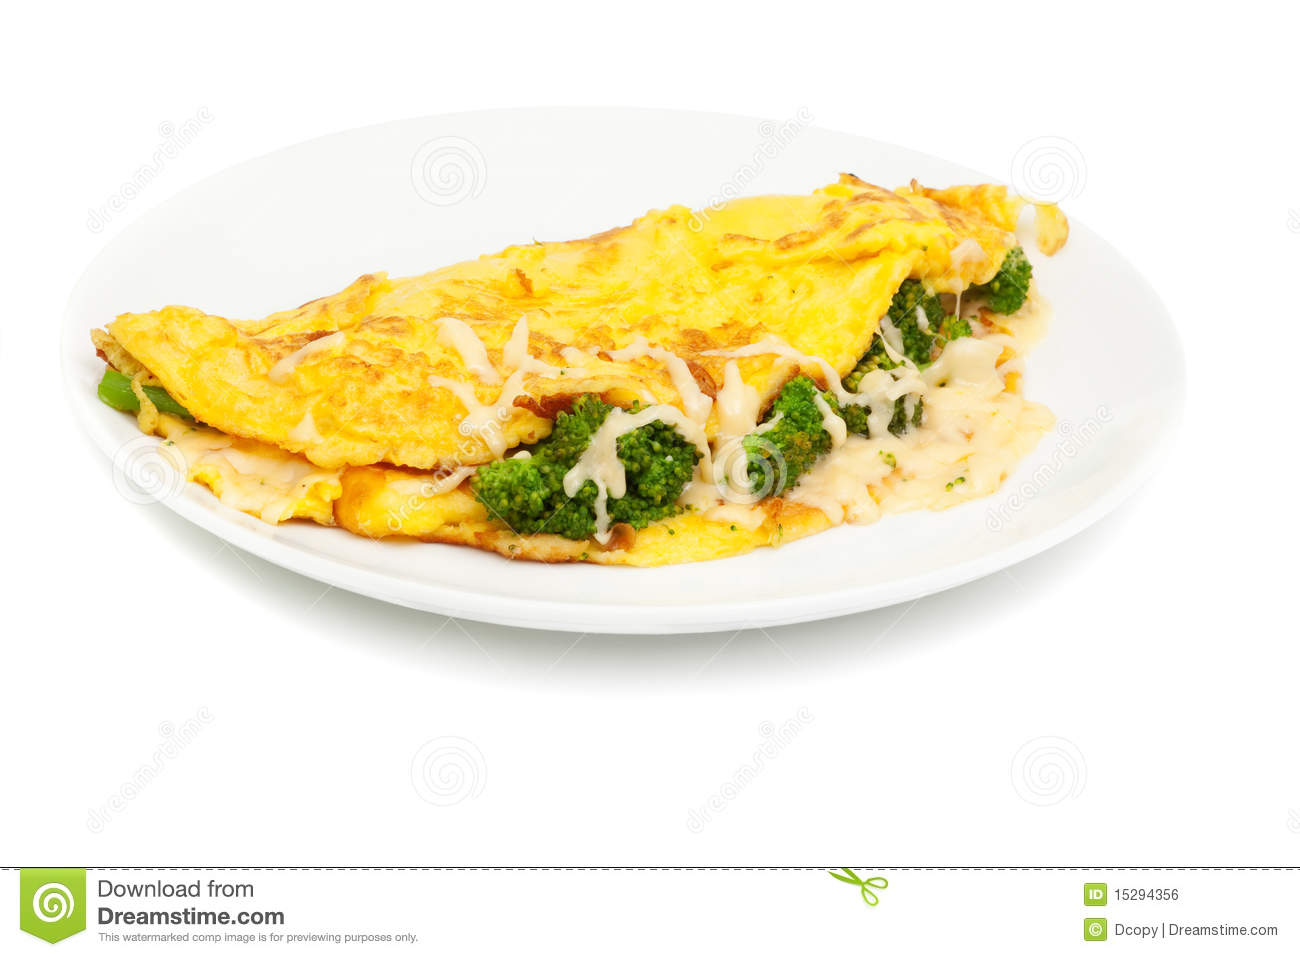 Omelet With Cheese And Broccoli Royalty Free Stock Image - Image ...